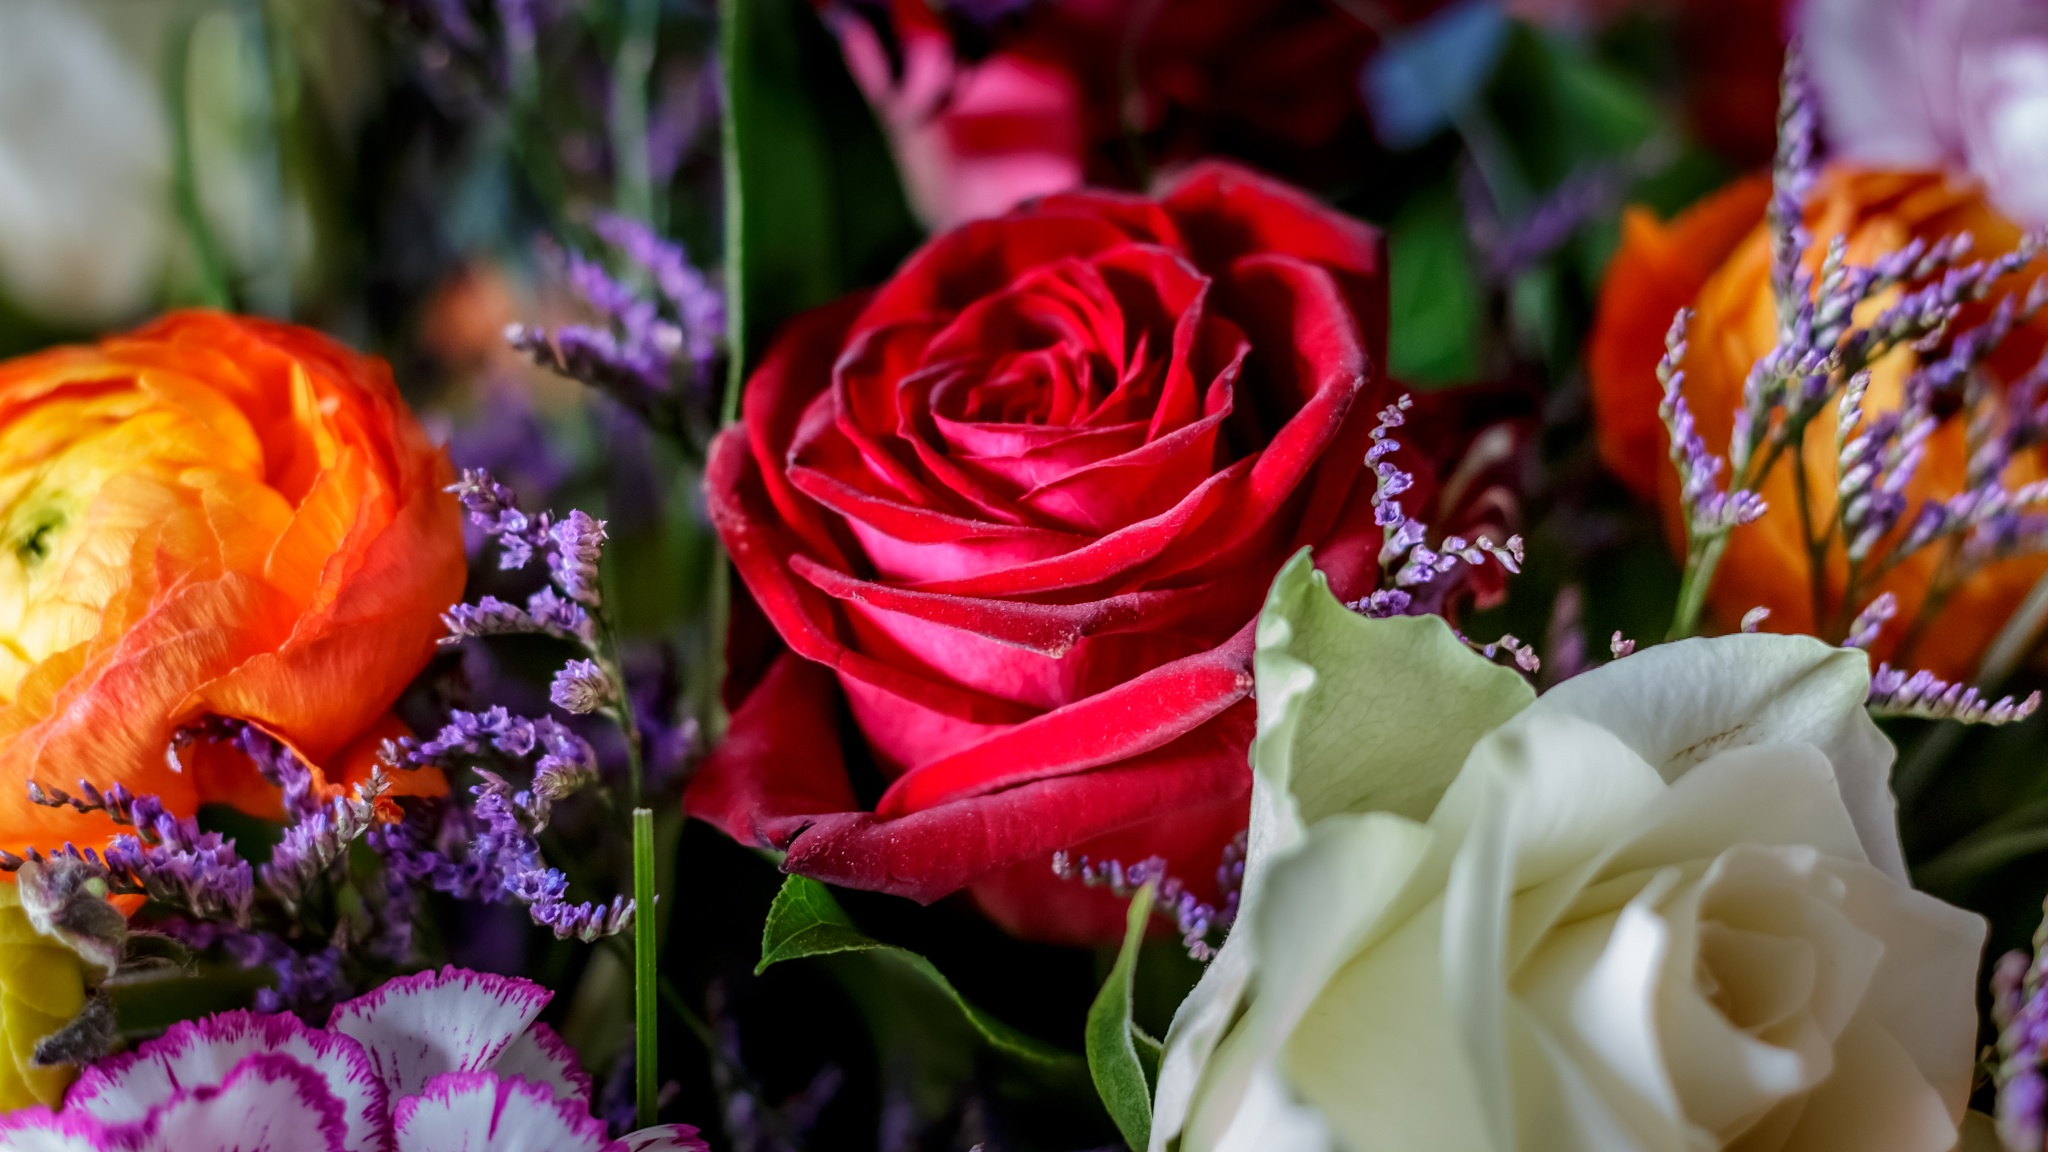 roses by matthewlawes123